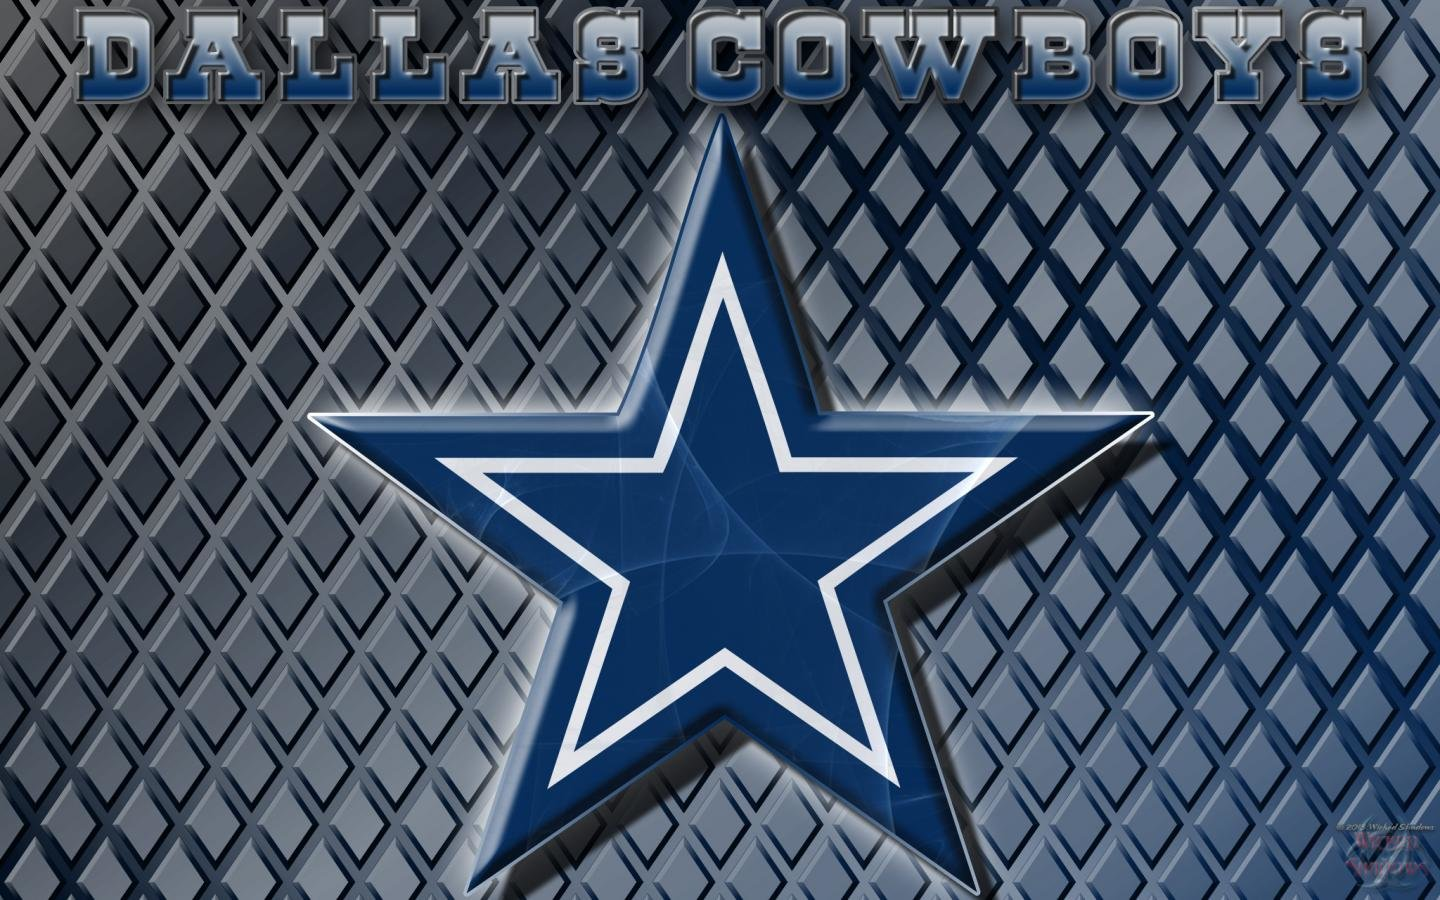 Awesome Dallas Cowboys free wallpaper ID:101590 for hd 1440x900 desktop